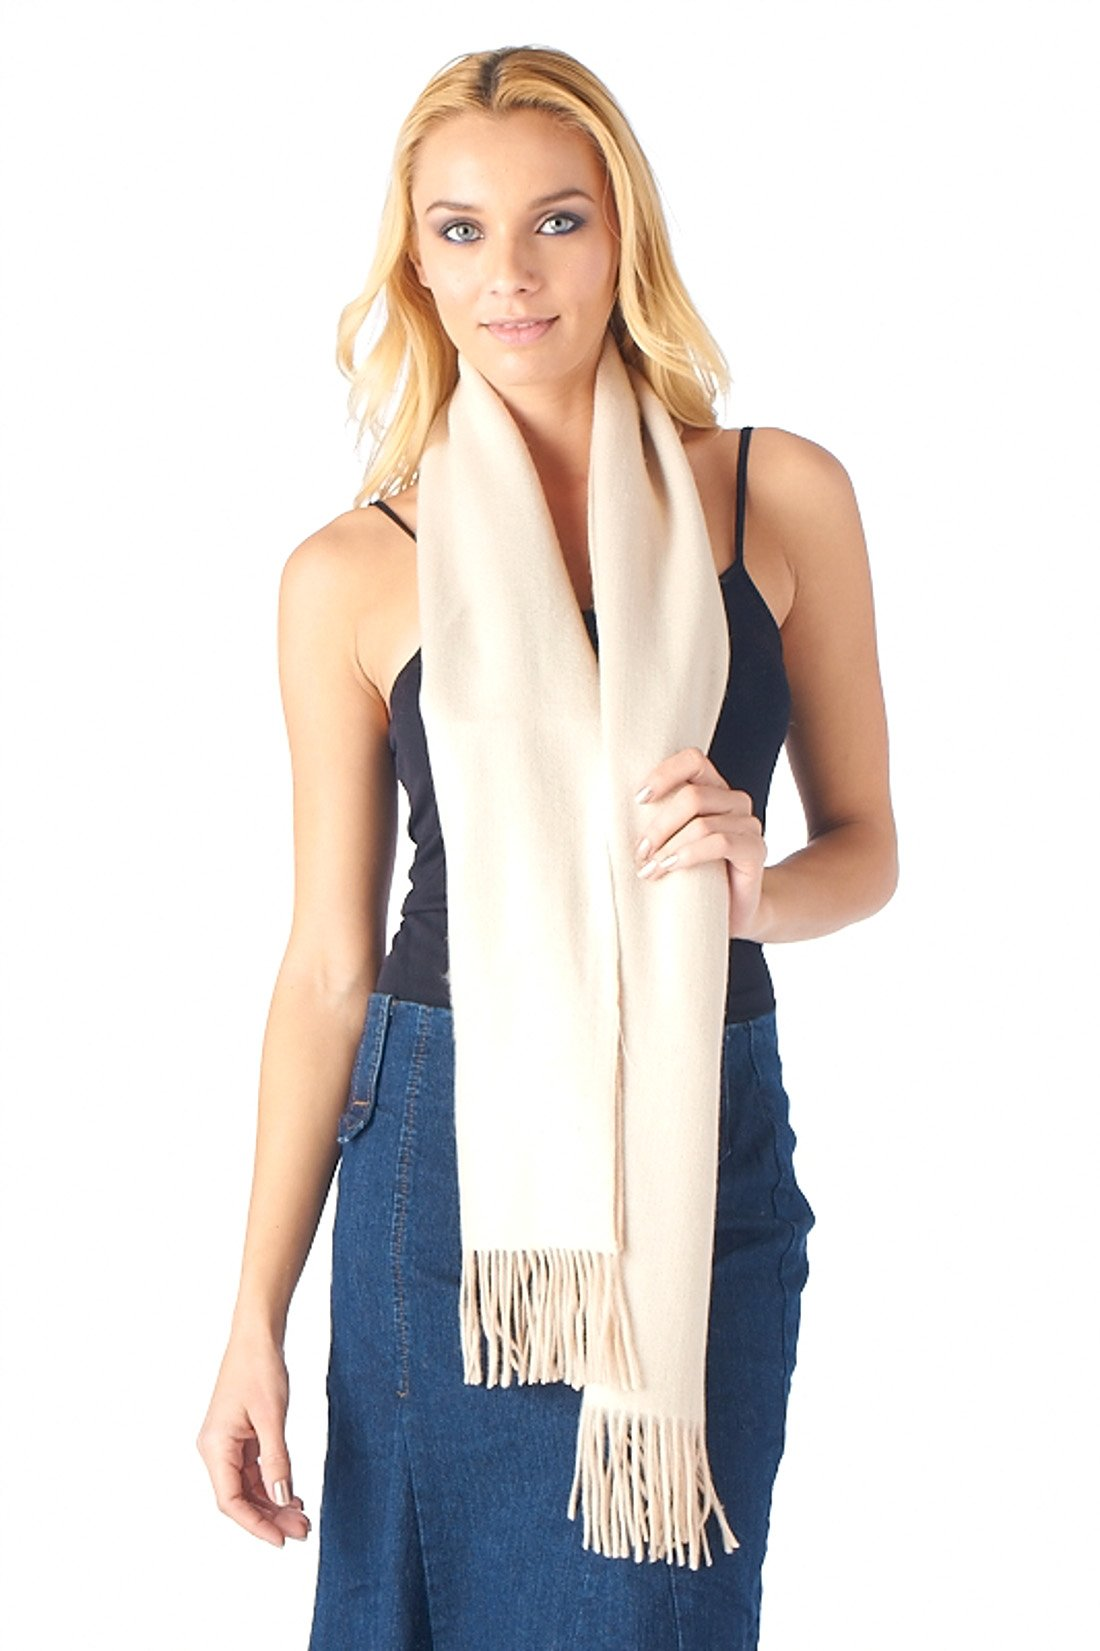 High Style 100% Cashmere Men and Women Double Faced Scarf (99366, Lt Camel and Ivory)